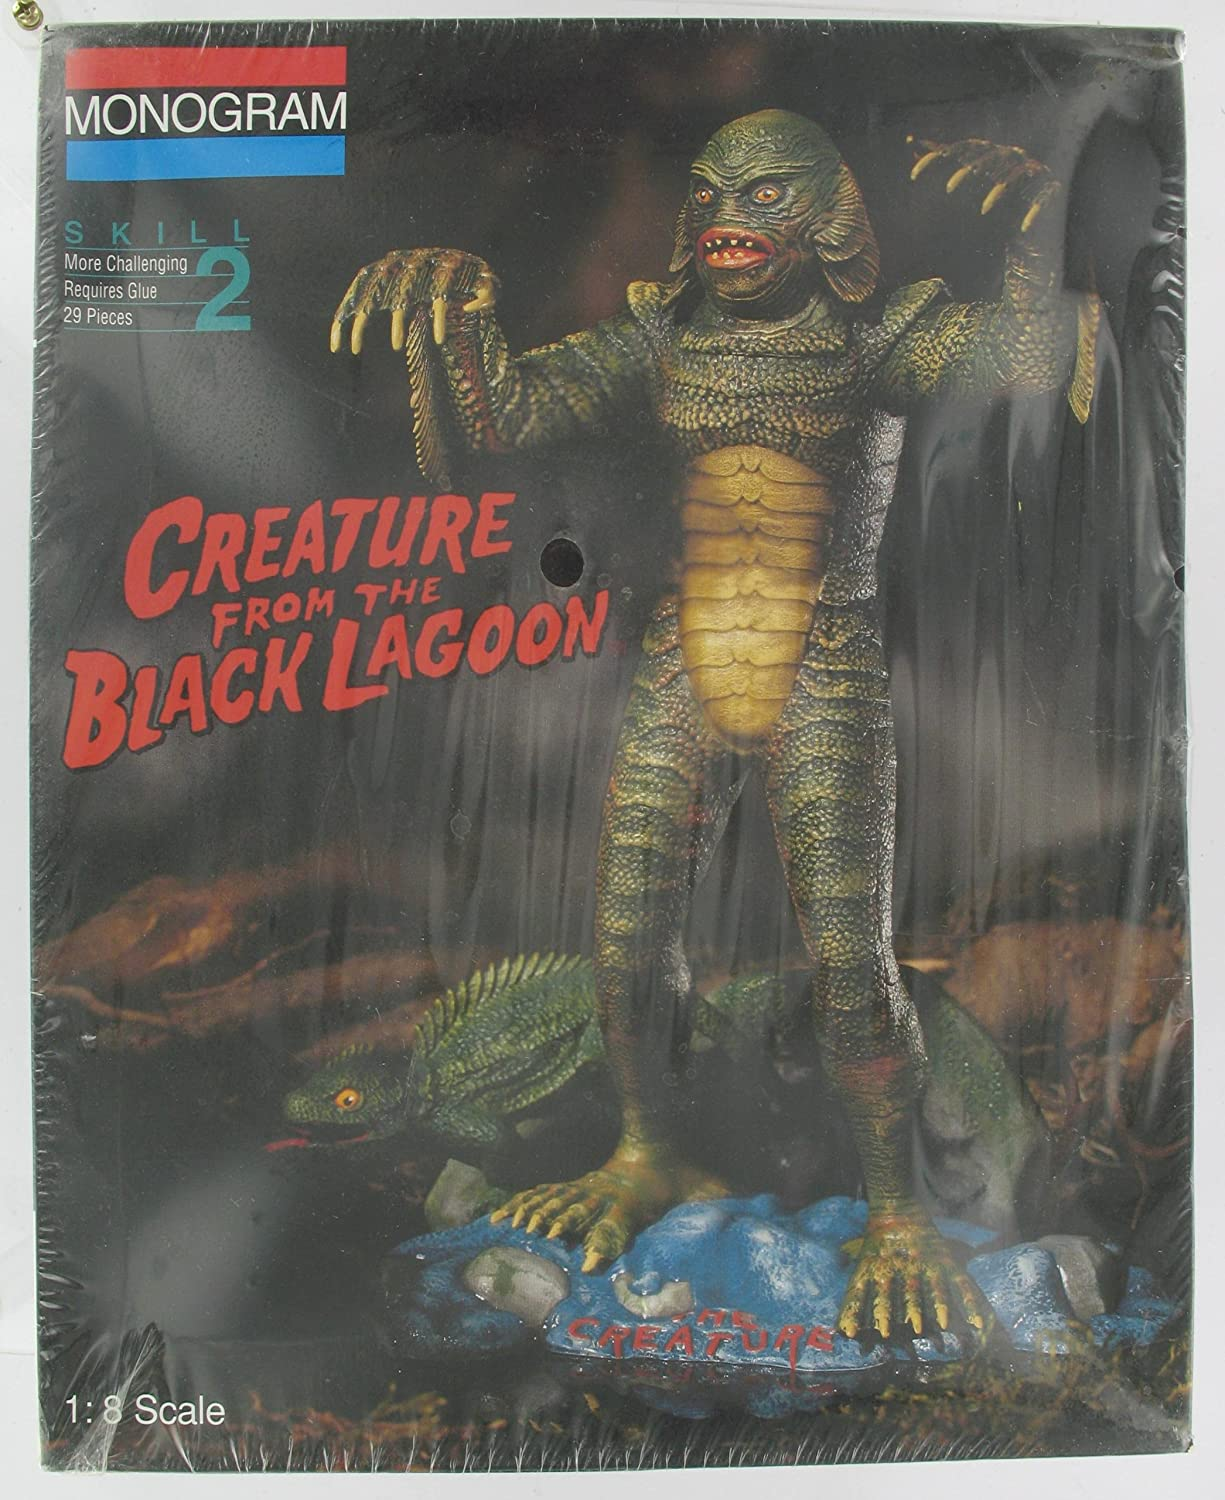 Monogram Creature from the Black Lagoon Model Kit 1//8 scale 6490M0100